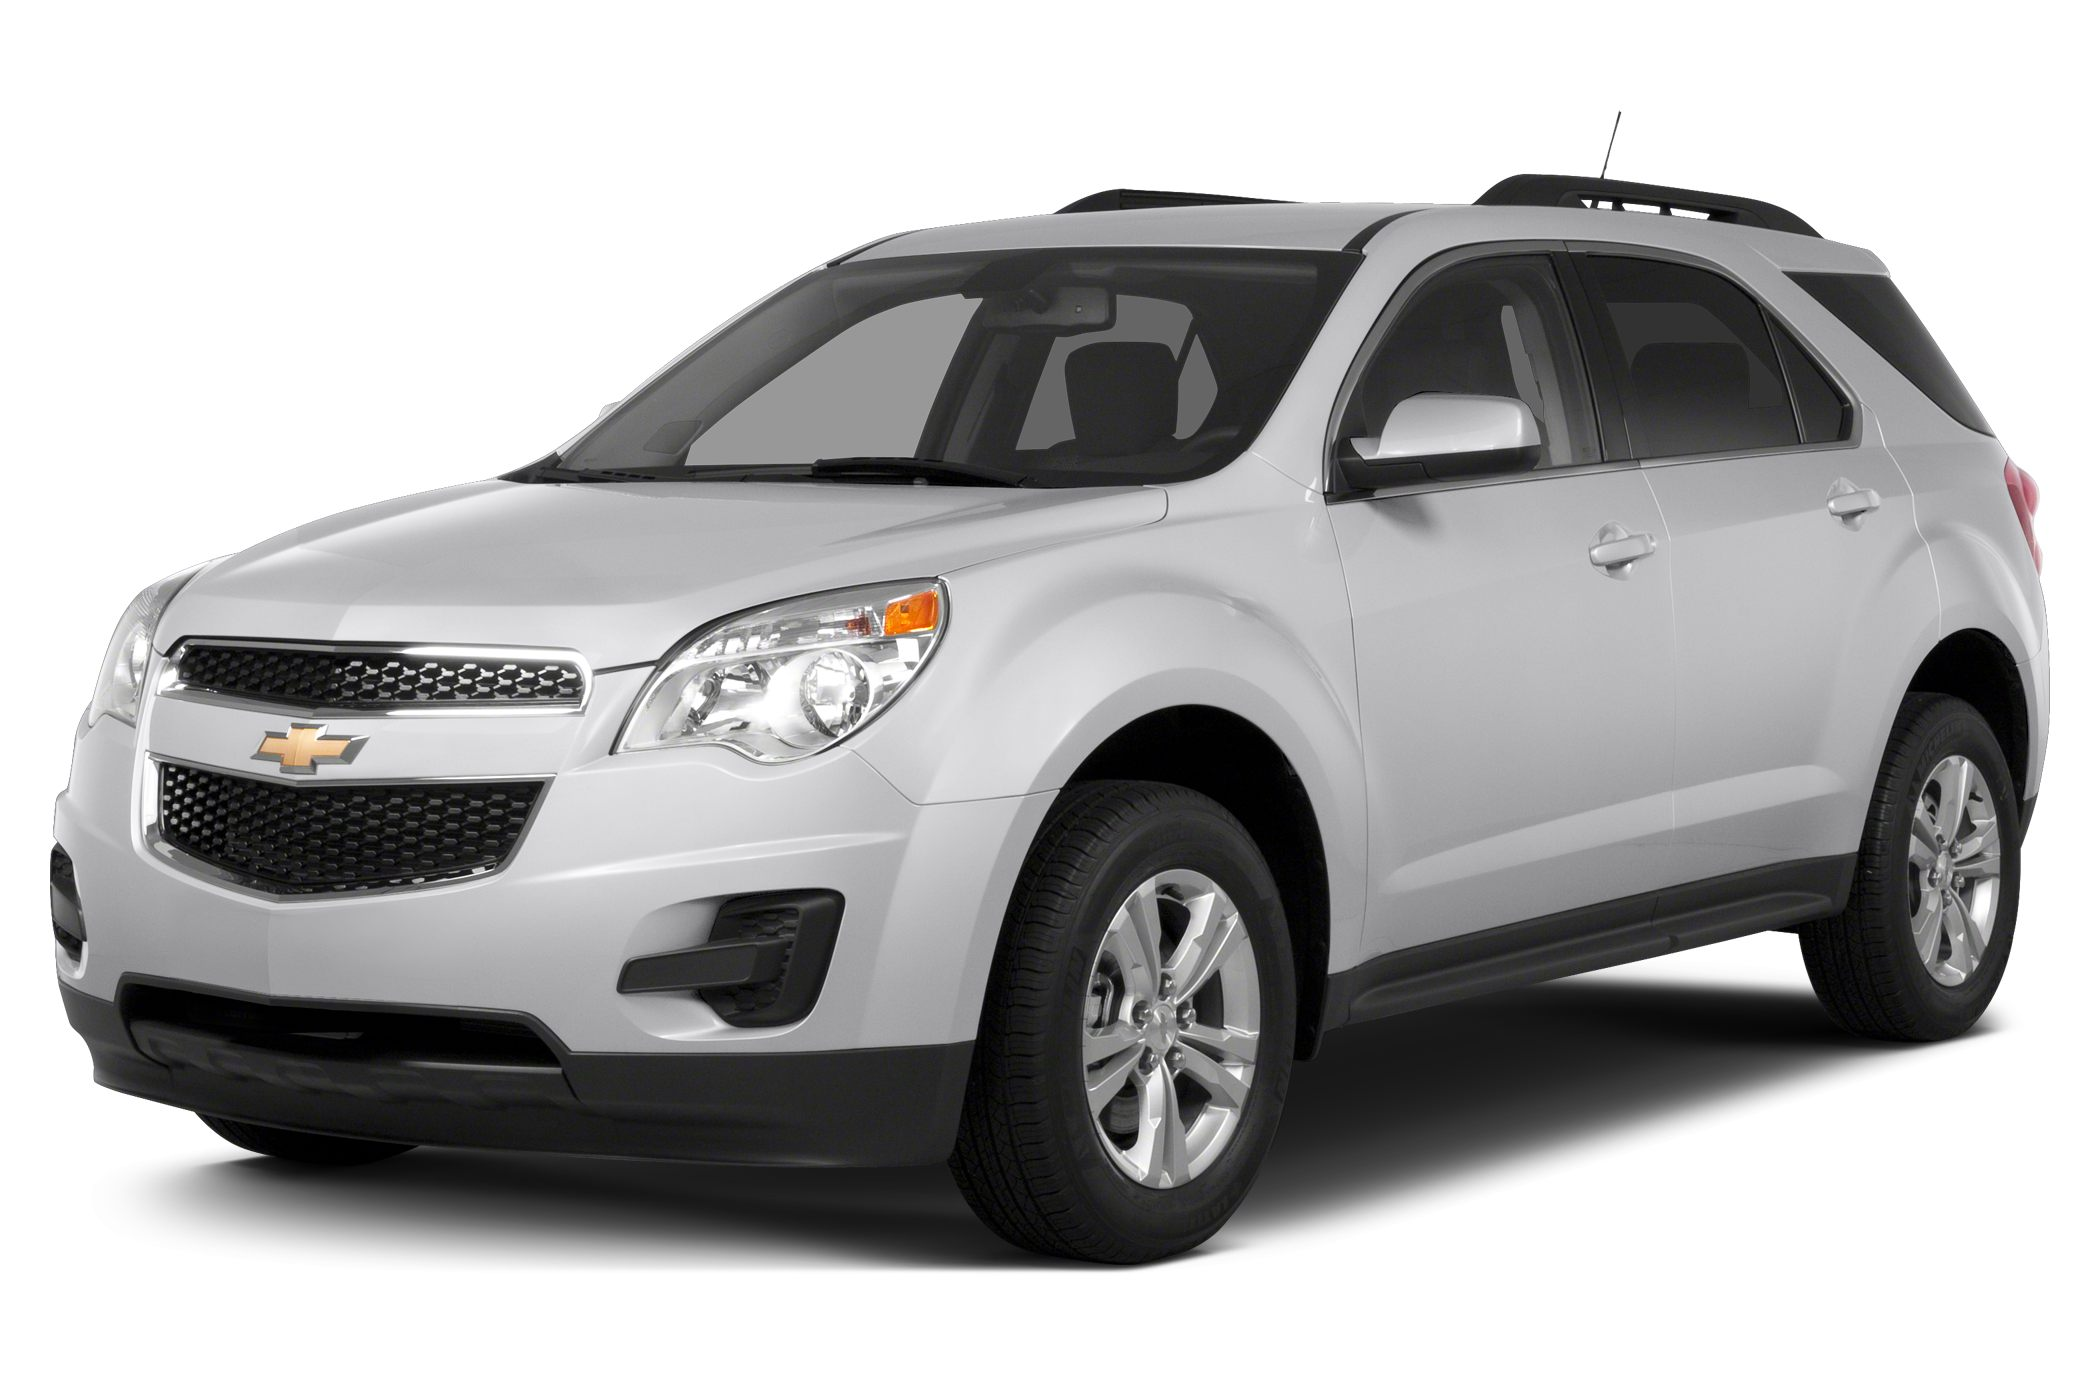 2015 Chevrolet Equinox 1LT SUV for sale in Rutland for $29,720 with 0 miles.